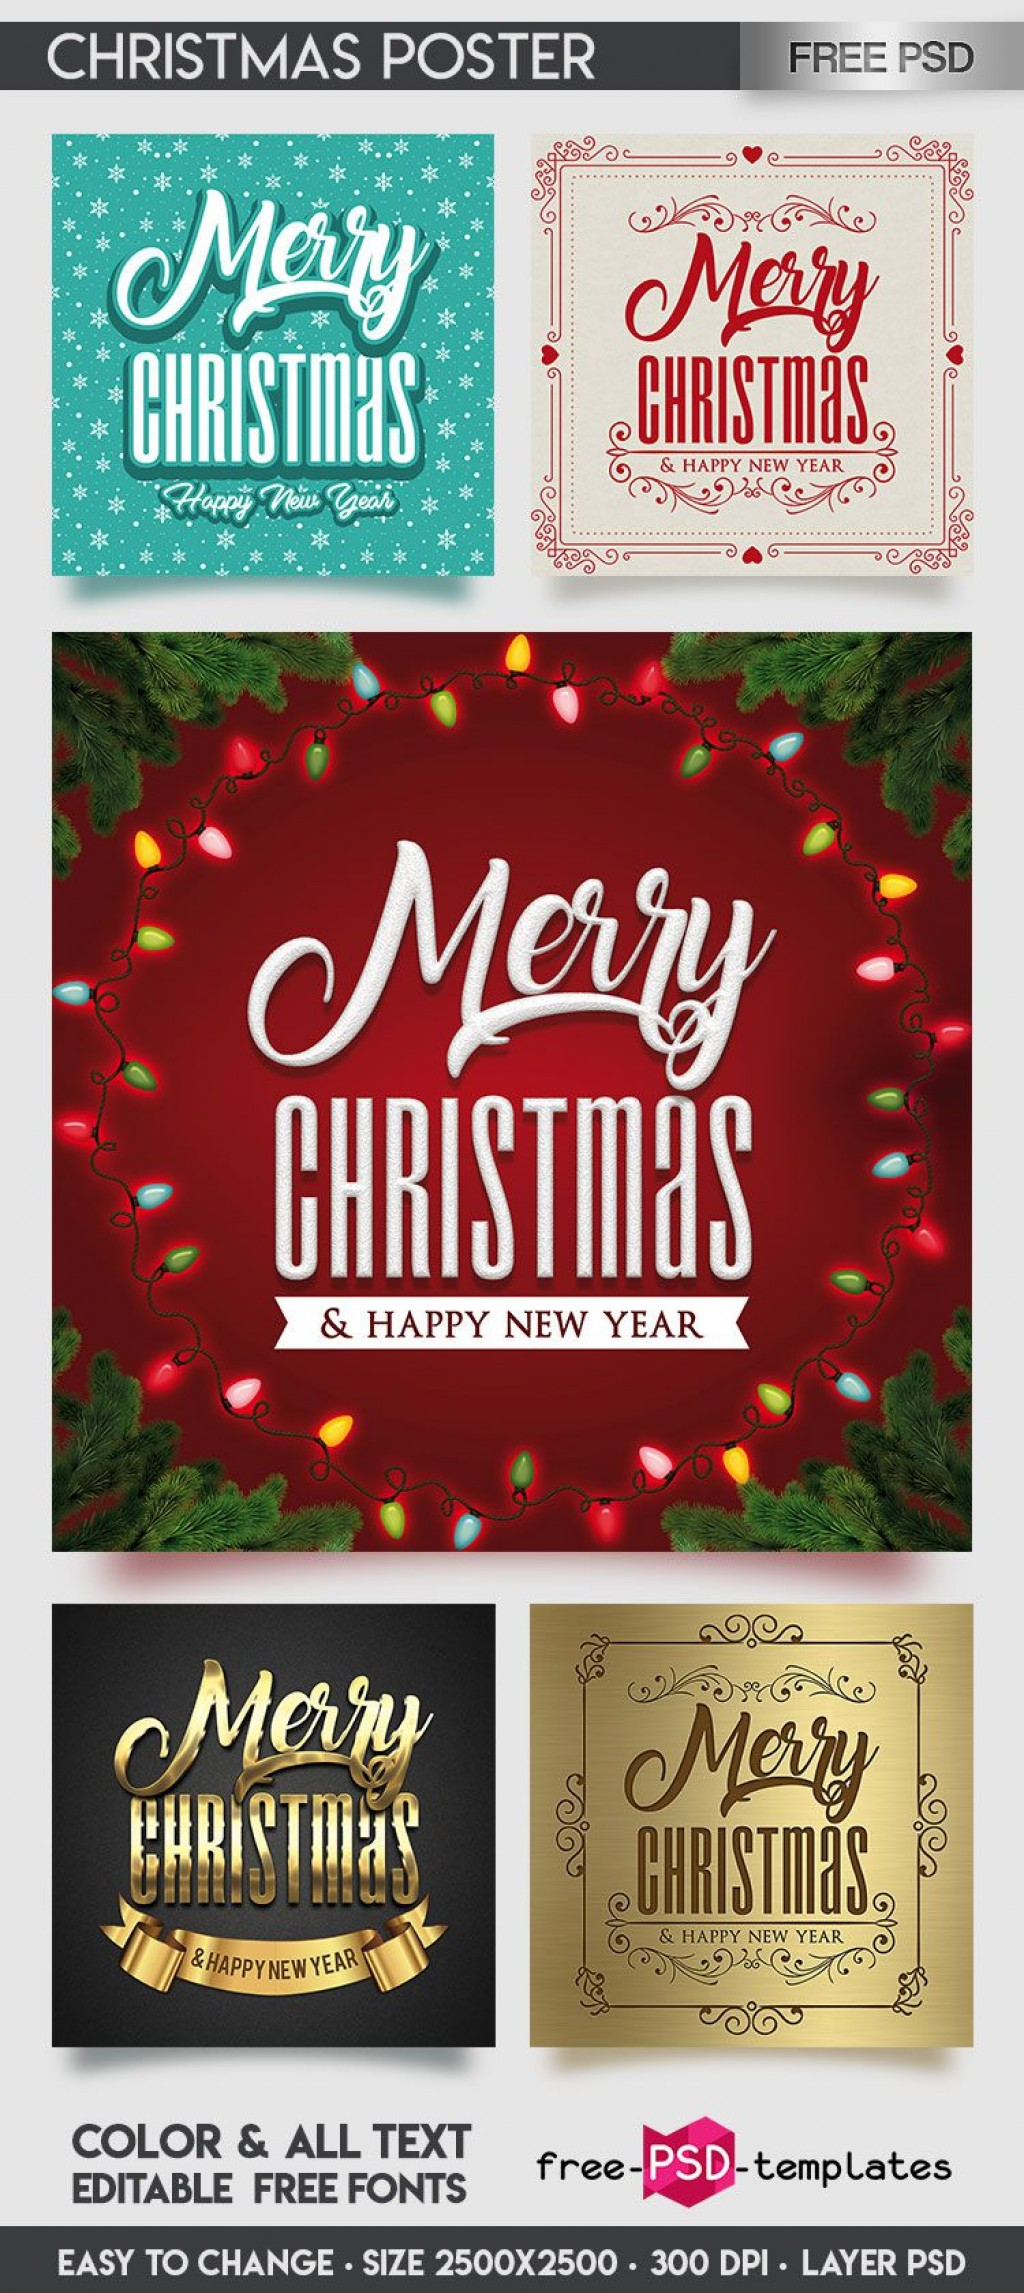 009 Fascinating Free Christma Poster Template Inspiration  Templates Psd Download Design WordLarge